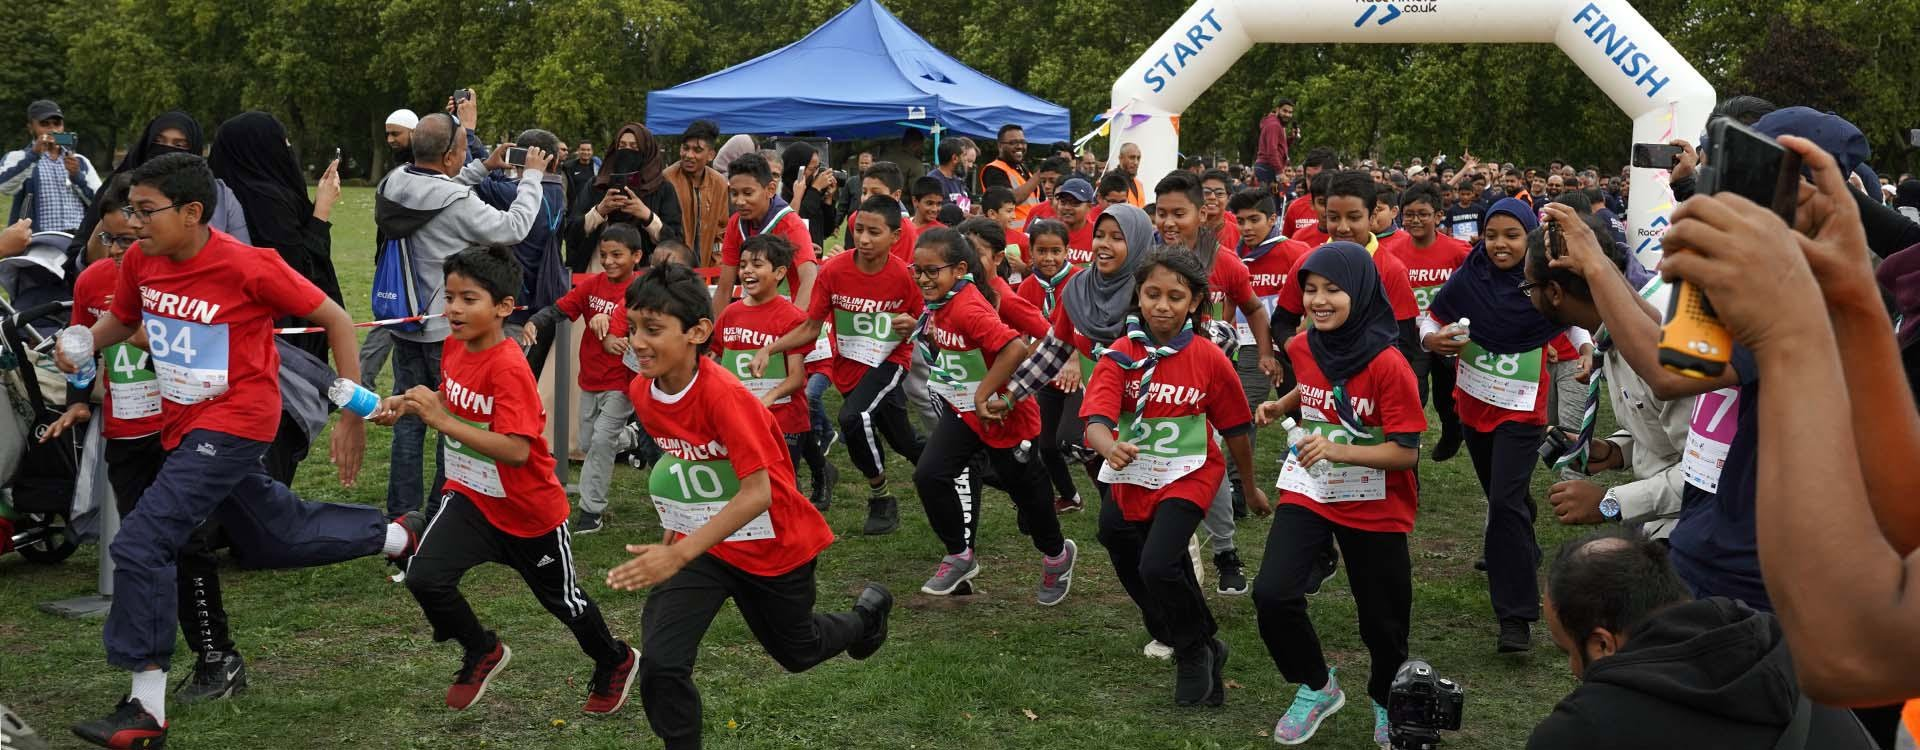 £1000s raised for good causes in Muslim Charity Run